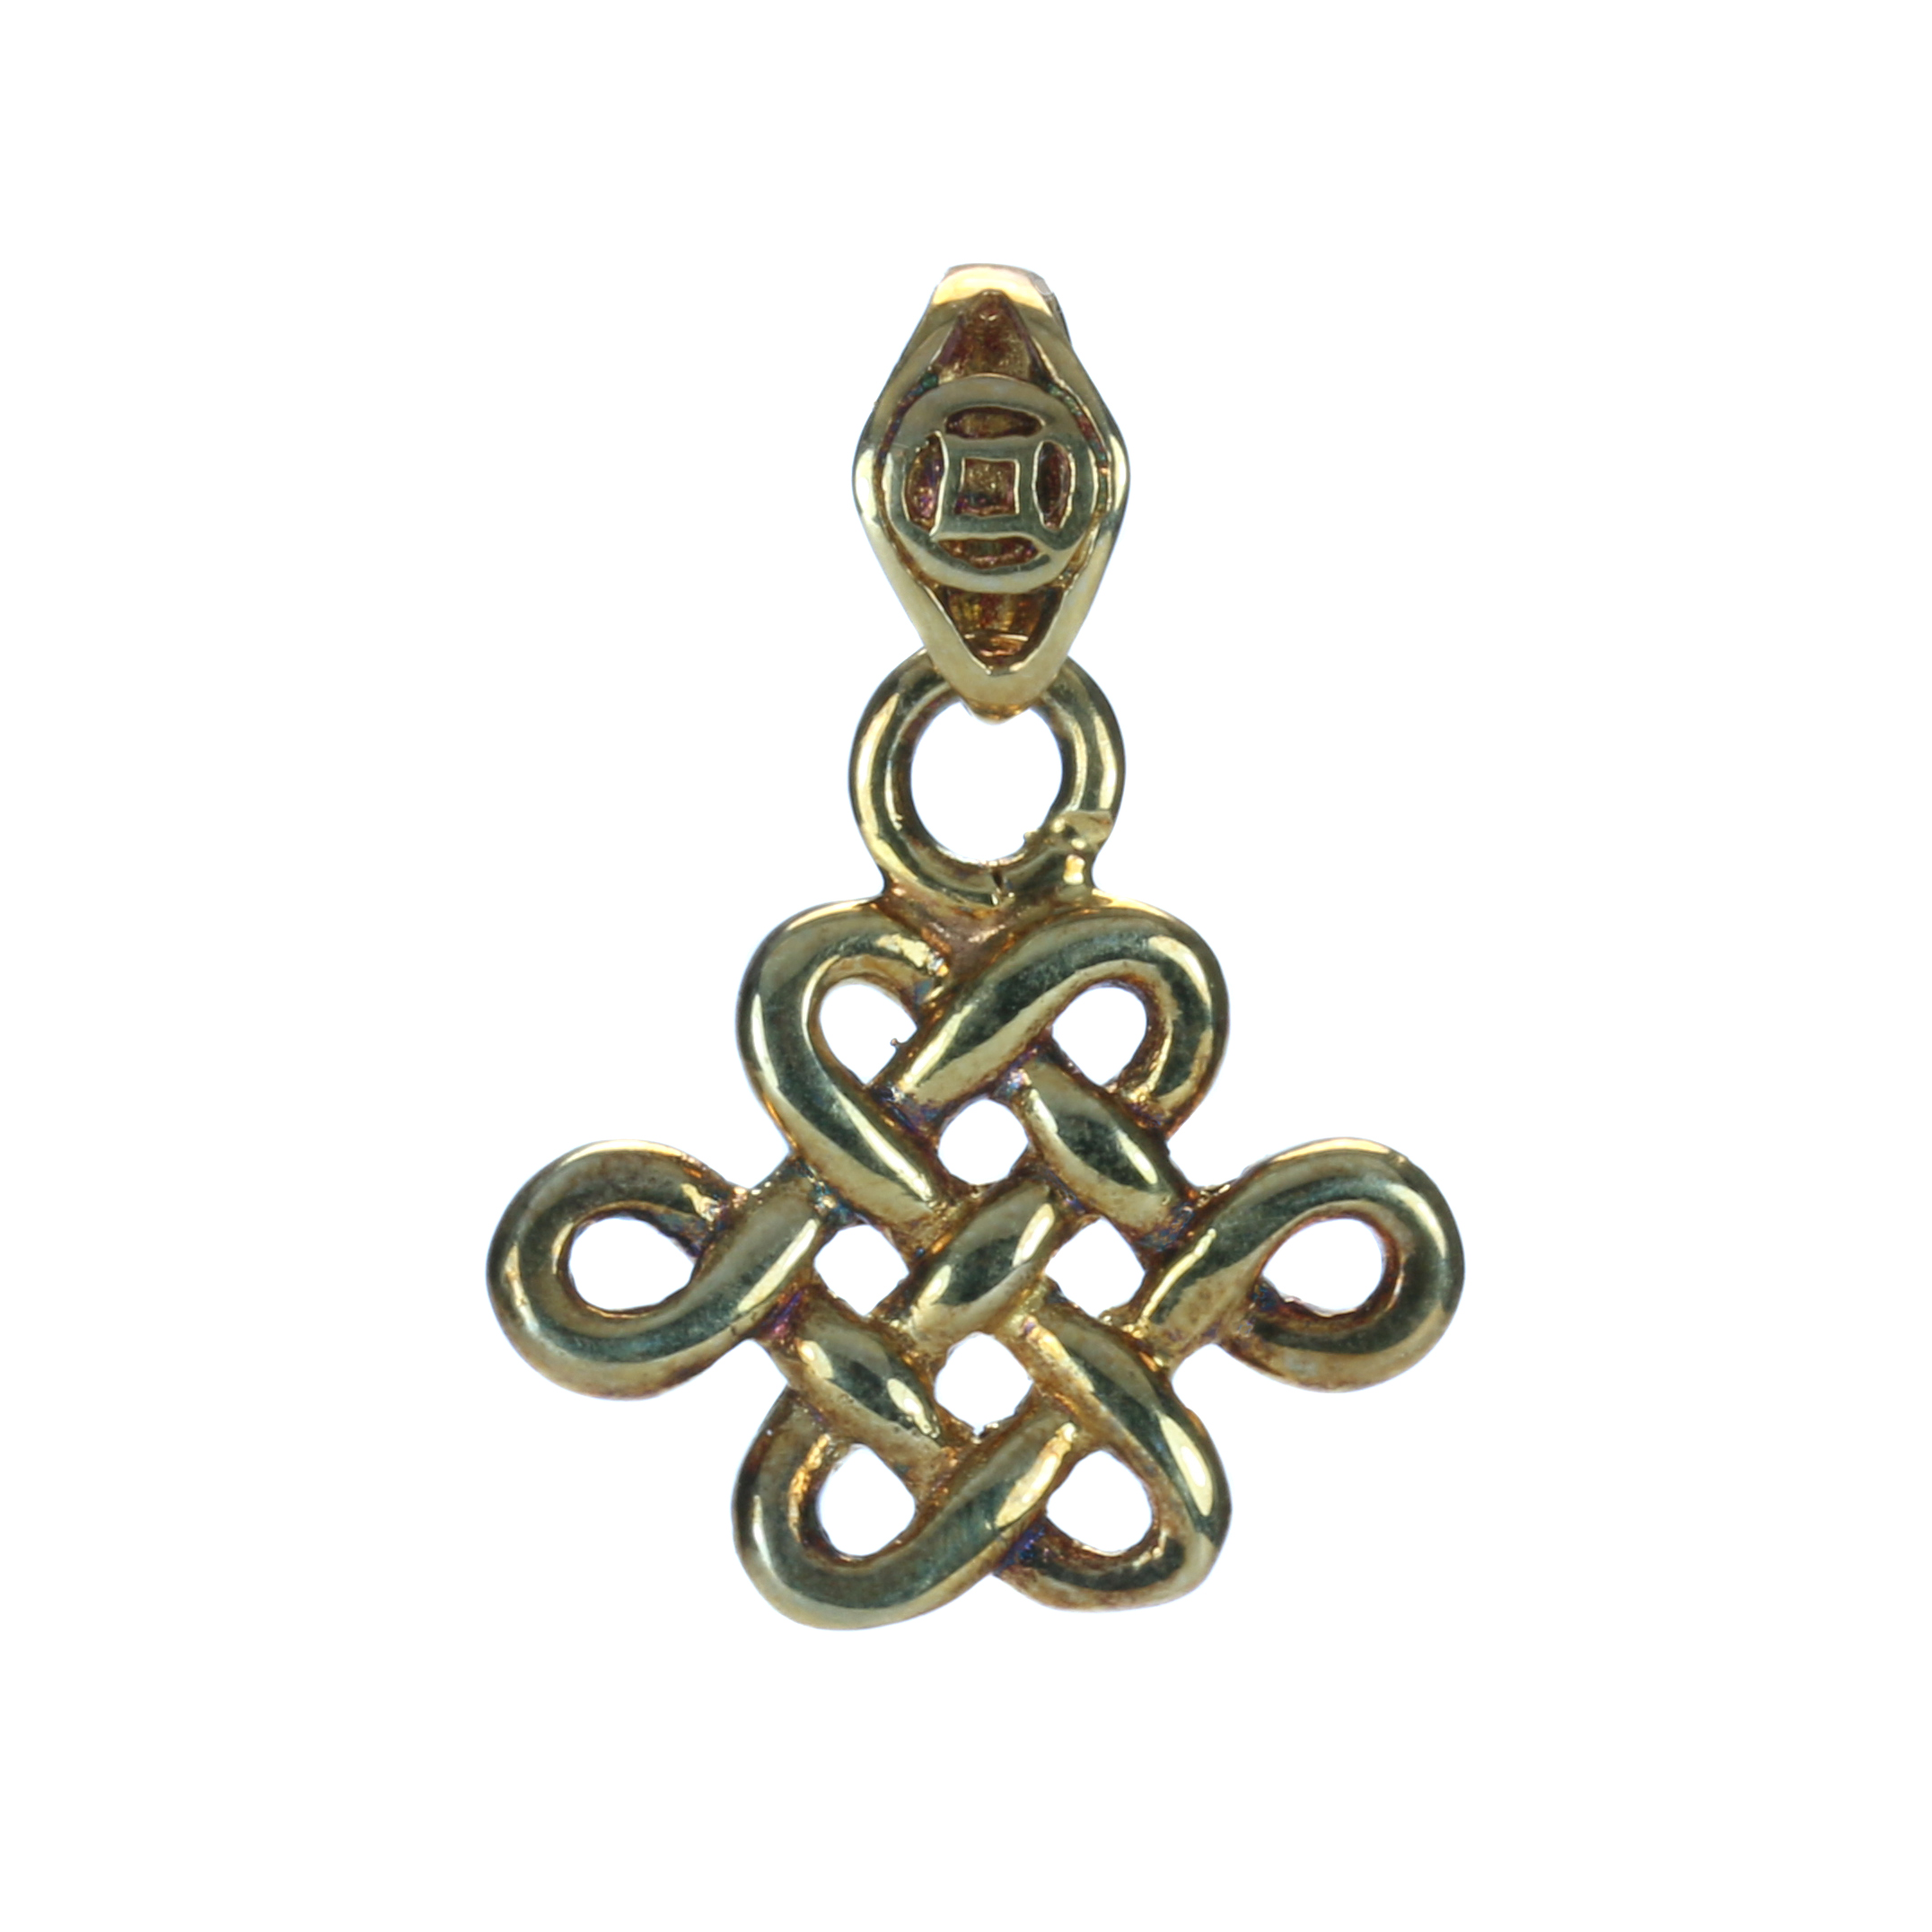 Gold plated mystic knot with coin pendant 8treasures gold plated mystic knot with coin pendant mozeypictures Image collections